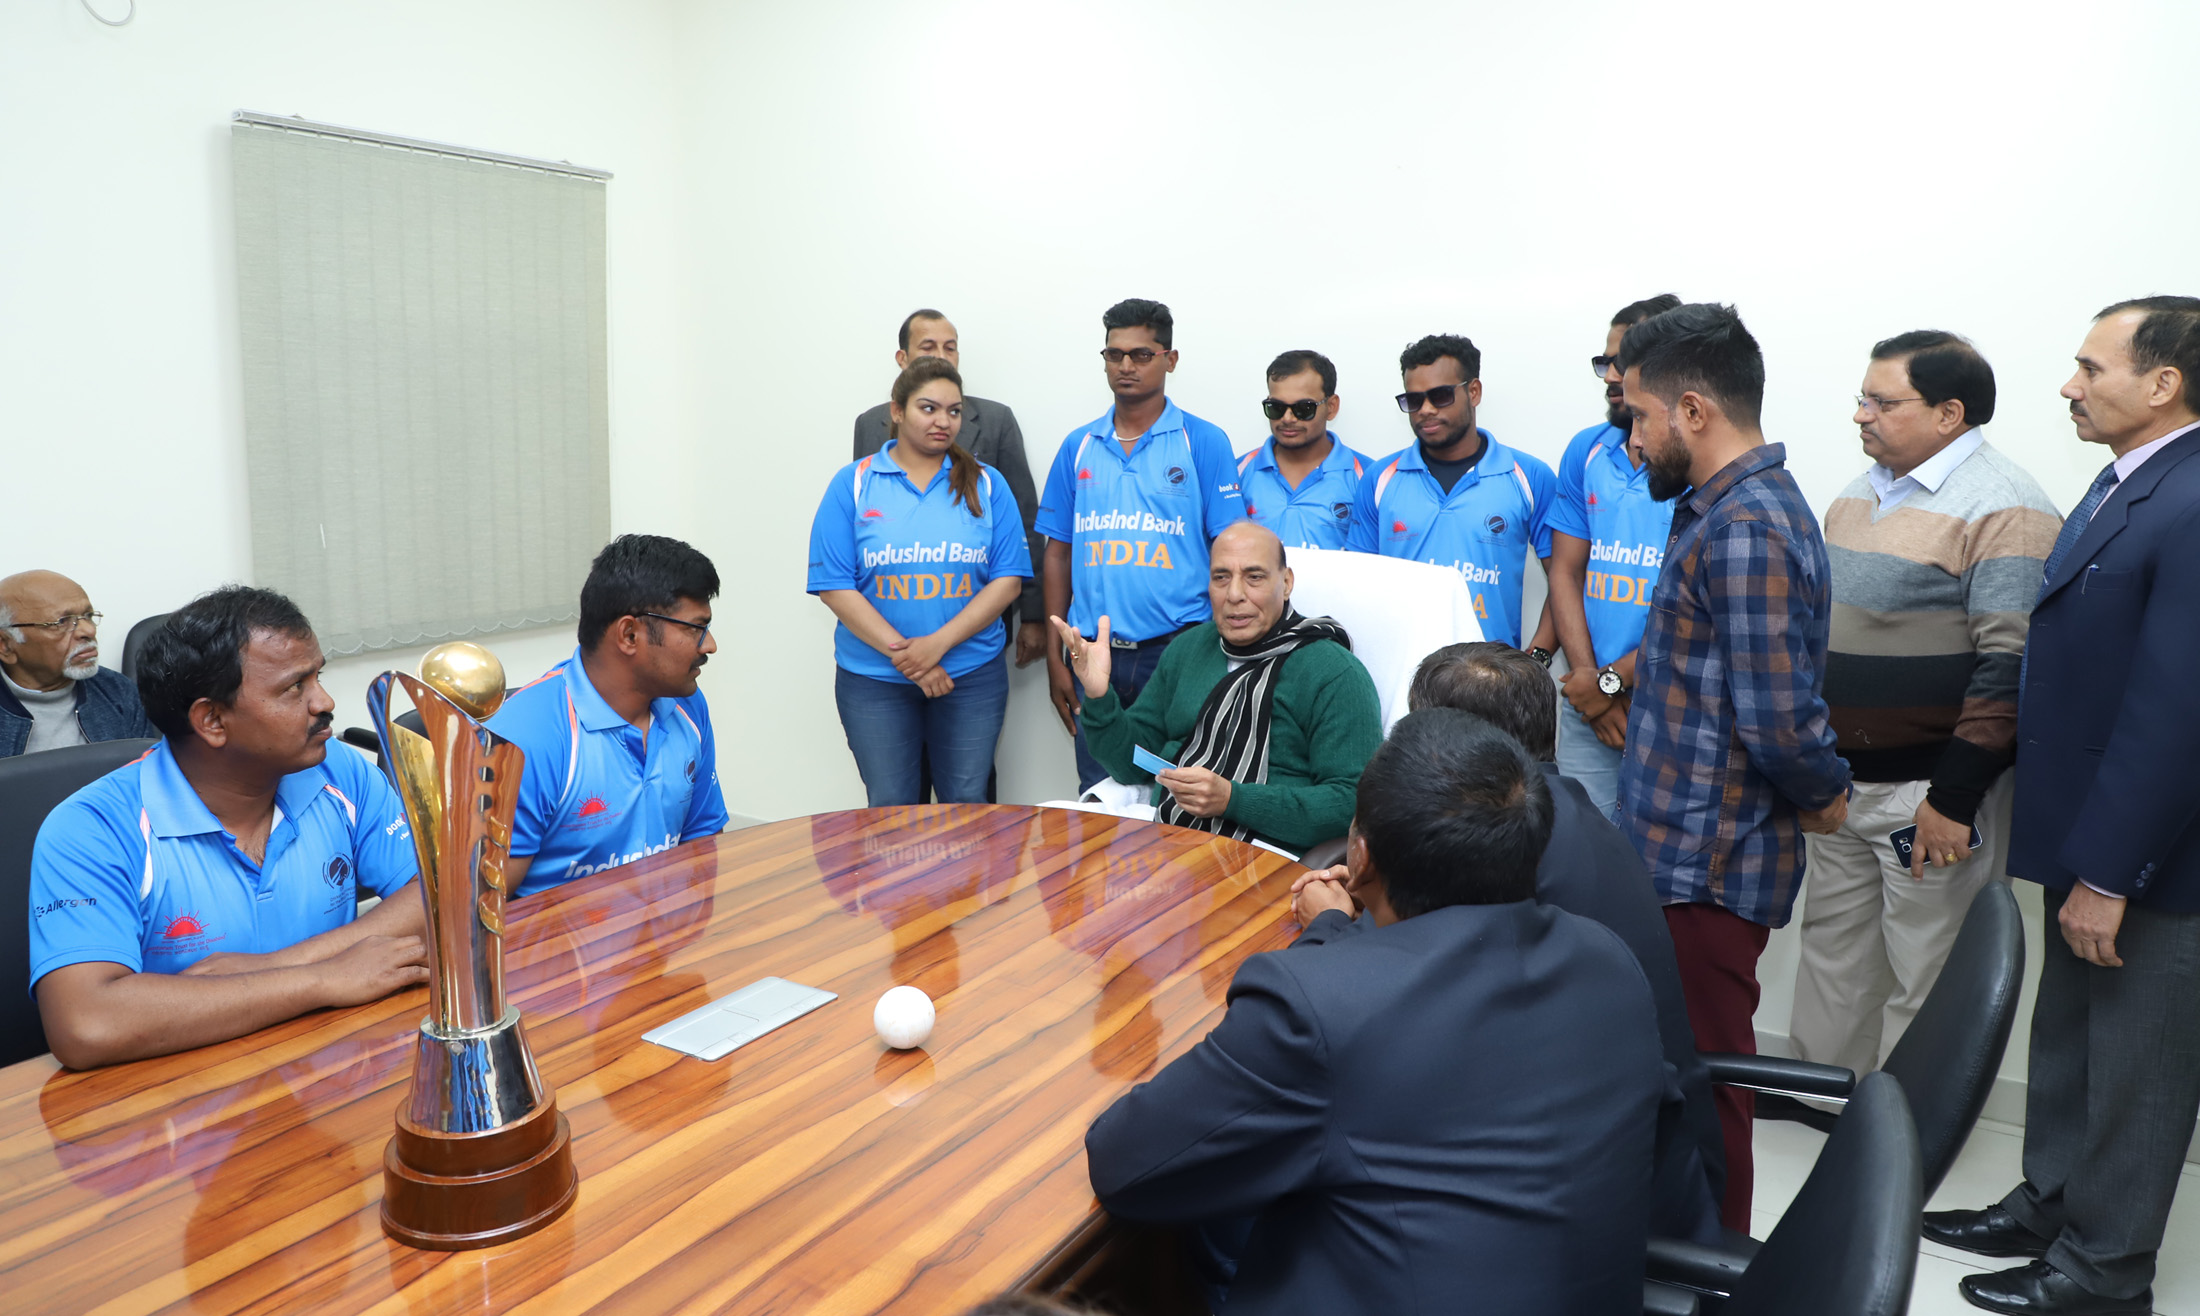 The India team which won the recent 2018 Blind Cricket World Cup in Sharjah, UAE, calling on the Union Home Minister, Shri Rajnath Singh, in New Delhi on January 23, 2018.